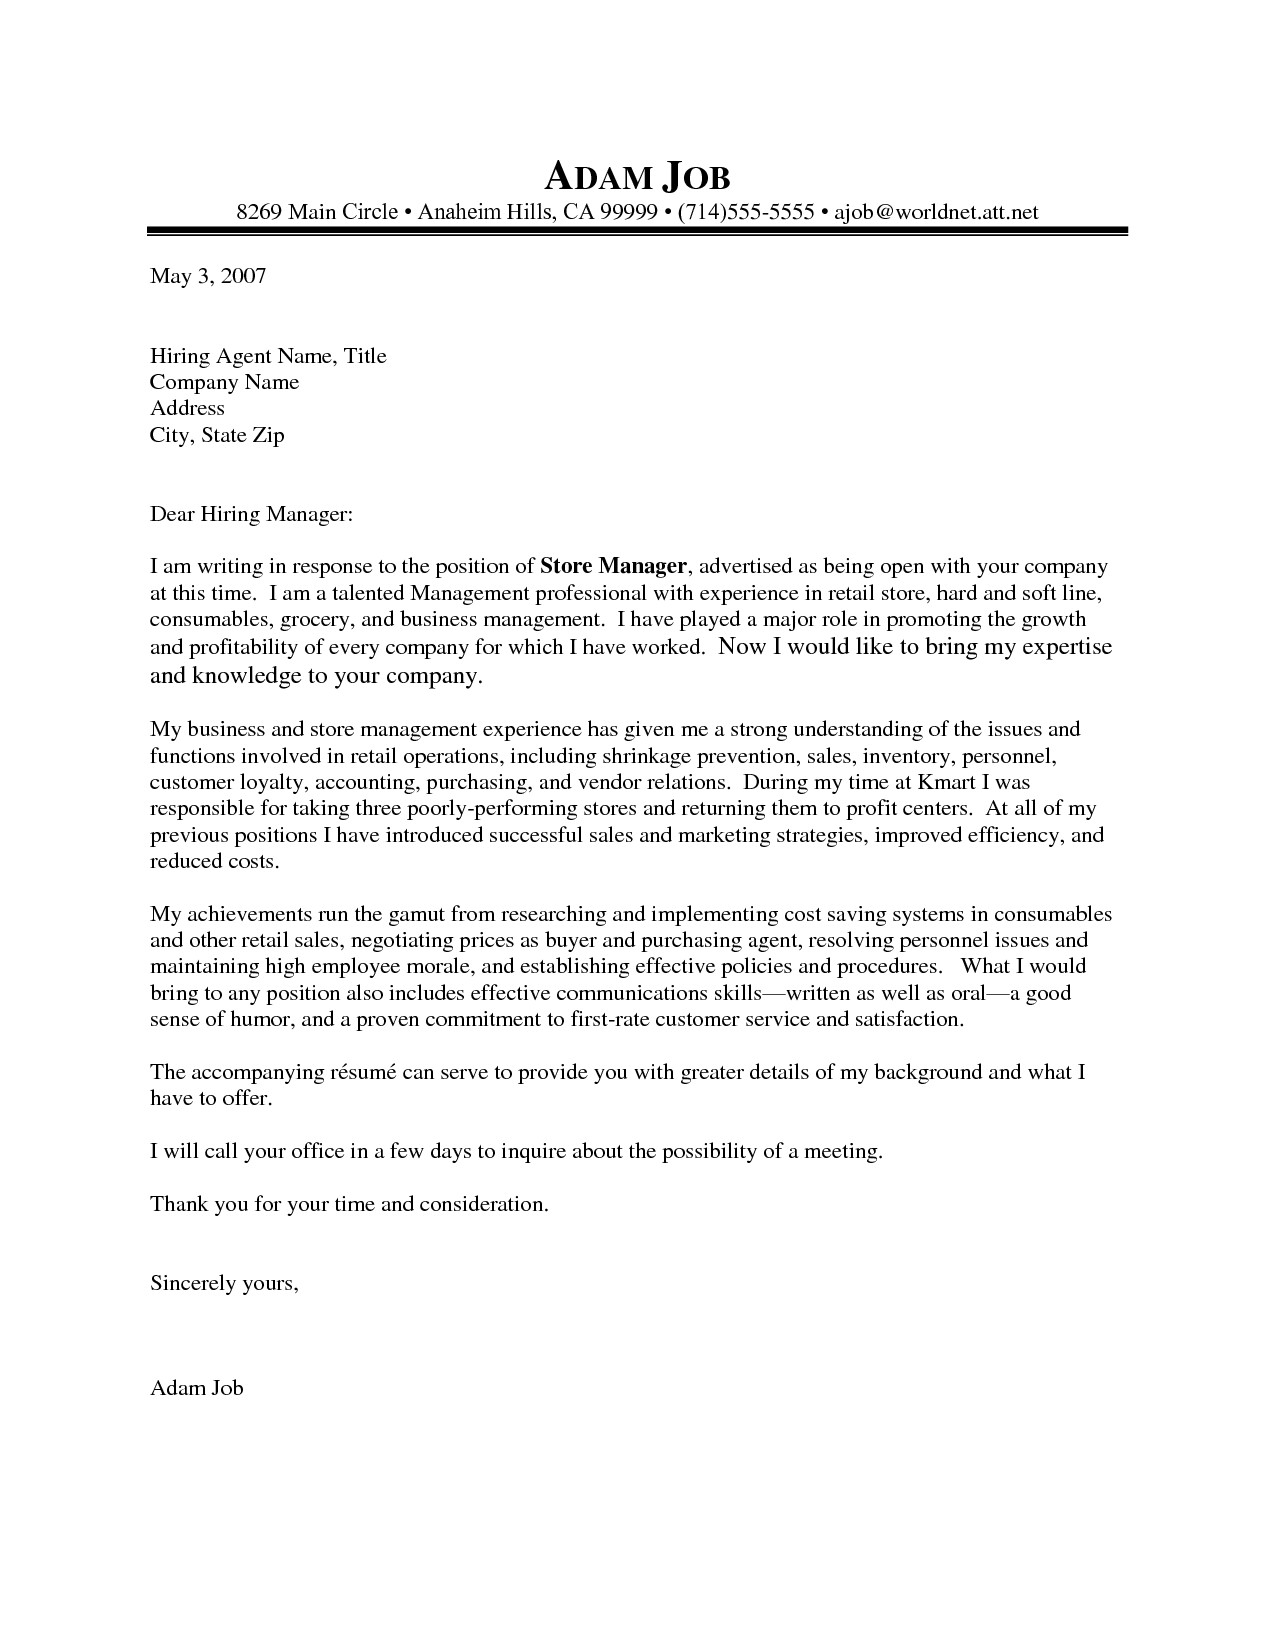 Cover Letter Template Retail Sales assistant - Example Cover Letter for Retail Job New Retail Job Cover Letter